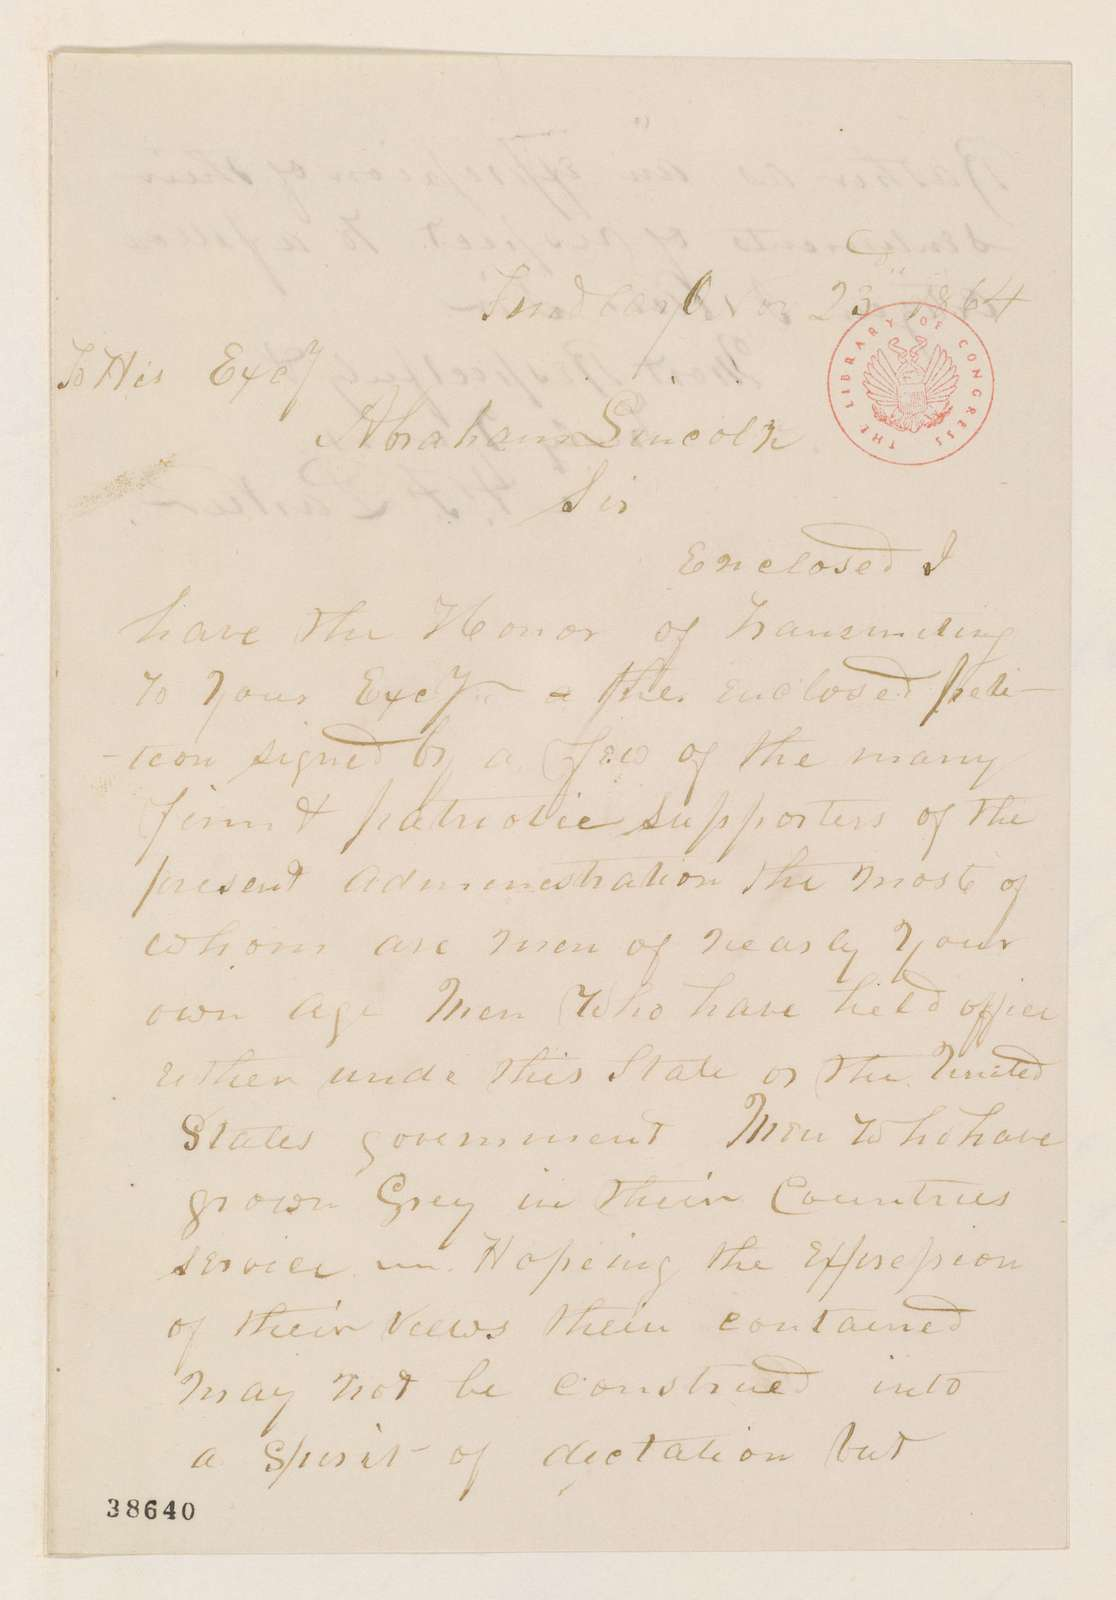 Abraham Lincoln papers: Series 1. General Correspondence. 1833-1916: A. F. Parker to Abraham Lincoln, Wednesday, November 23, 1864 (Sends petition)